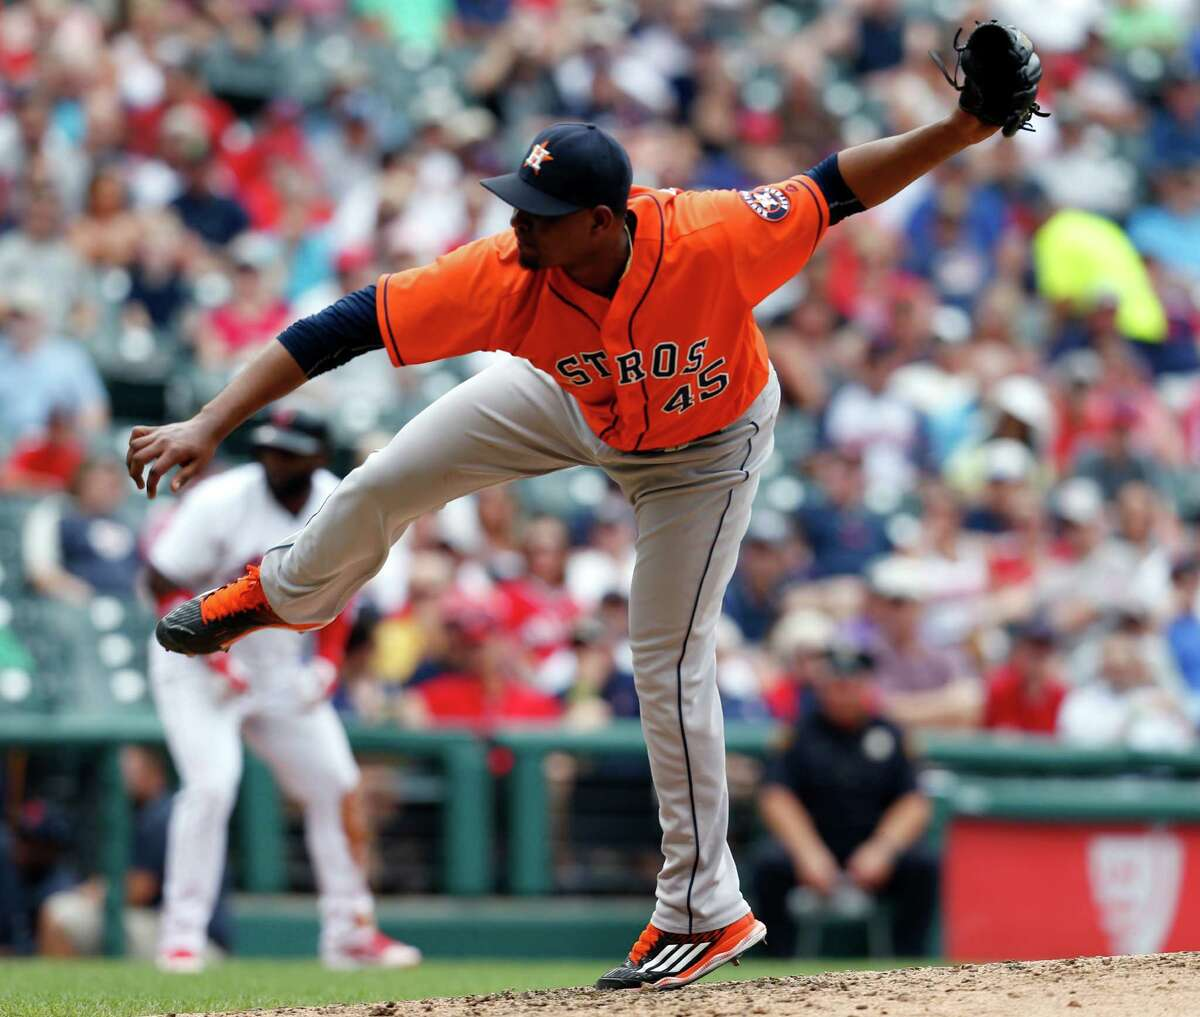 40-man roster Pitchers 45, Michael Feliz, RHP Feliz spent nearly all of 2016 with the Astros and was used exclusively out the bullpen, where at times he flashed the stuff of a future set-up man or closer and at others looked more like middle relief material. He enters spring training as a favorite to win one of the team's last couple bullpen spots.